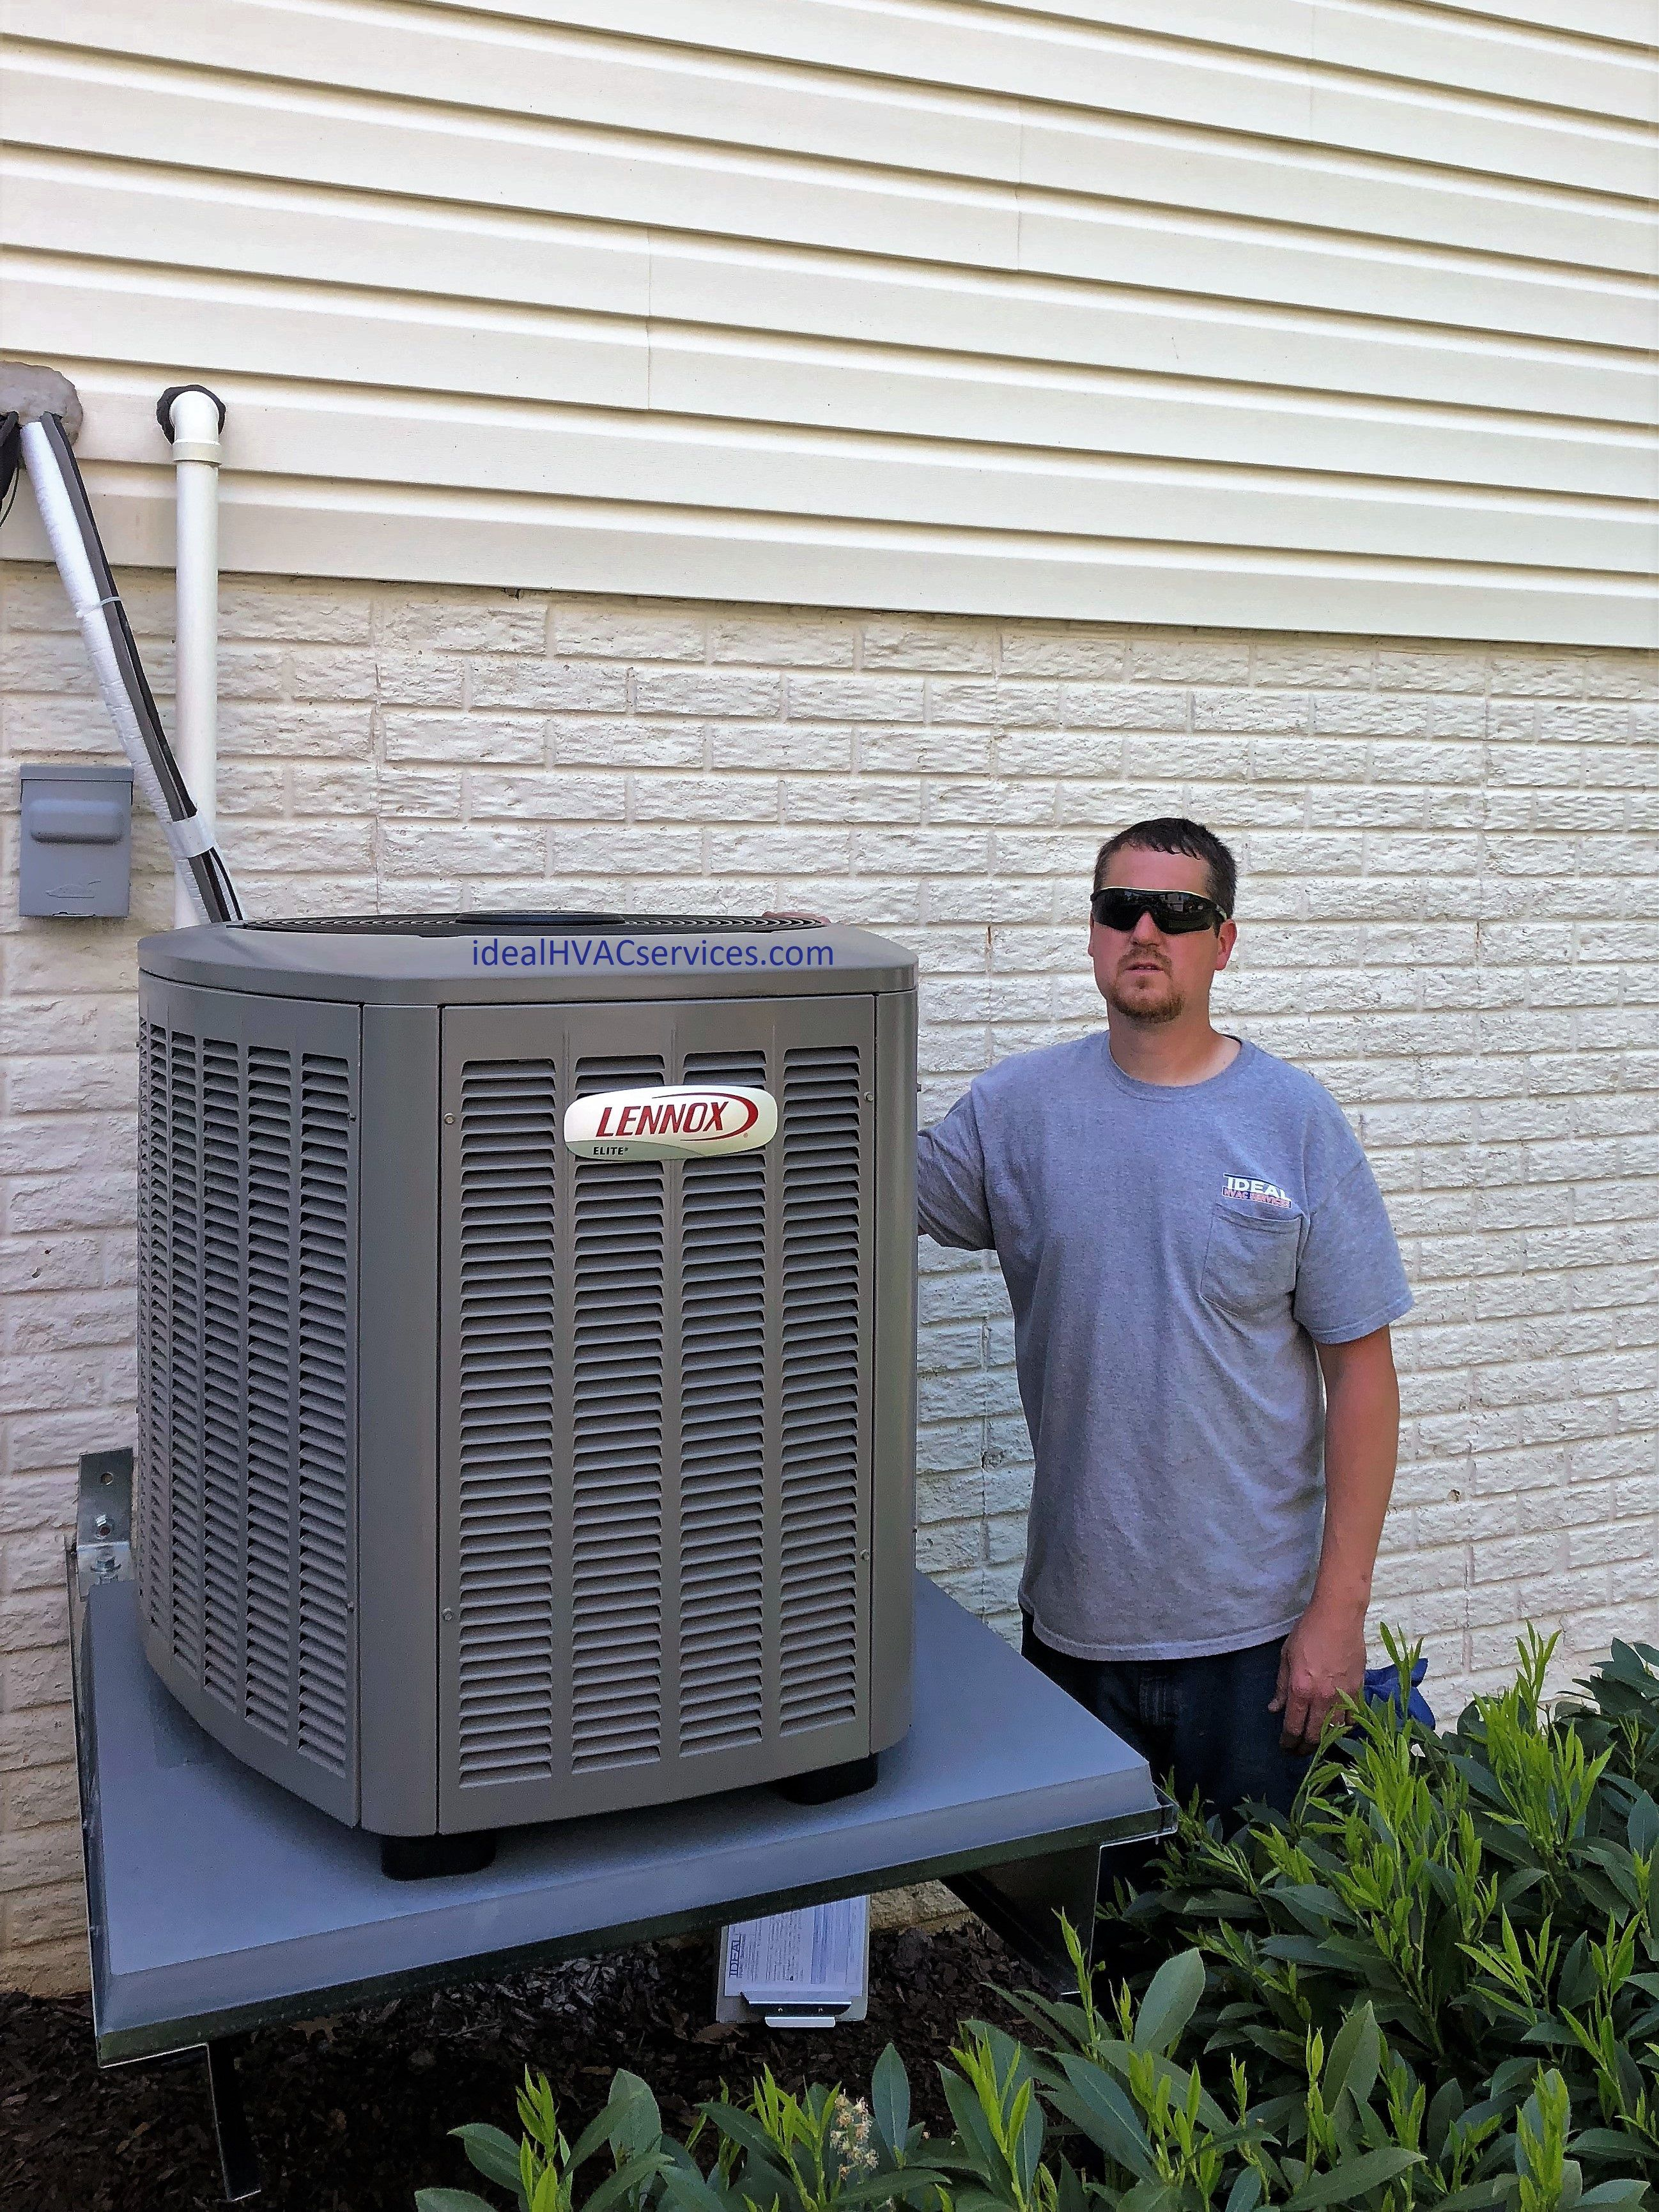 Heating And Air Conditioning Replacement Heat Pump System Hvacideal Lennox Heat Pump System Heating And Air Conditioning Hvac Services